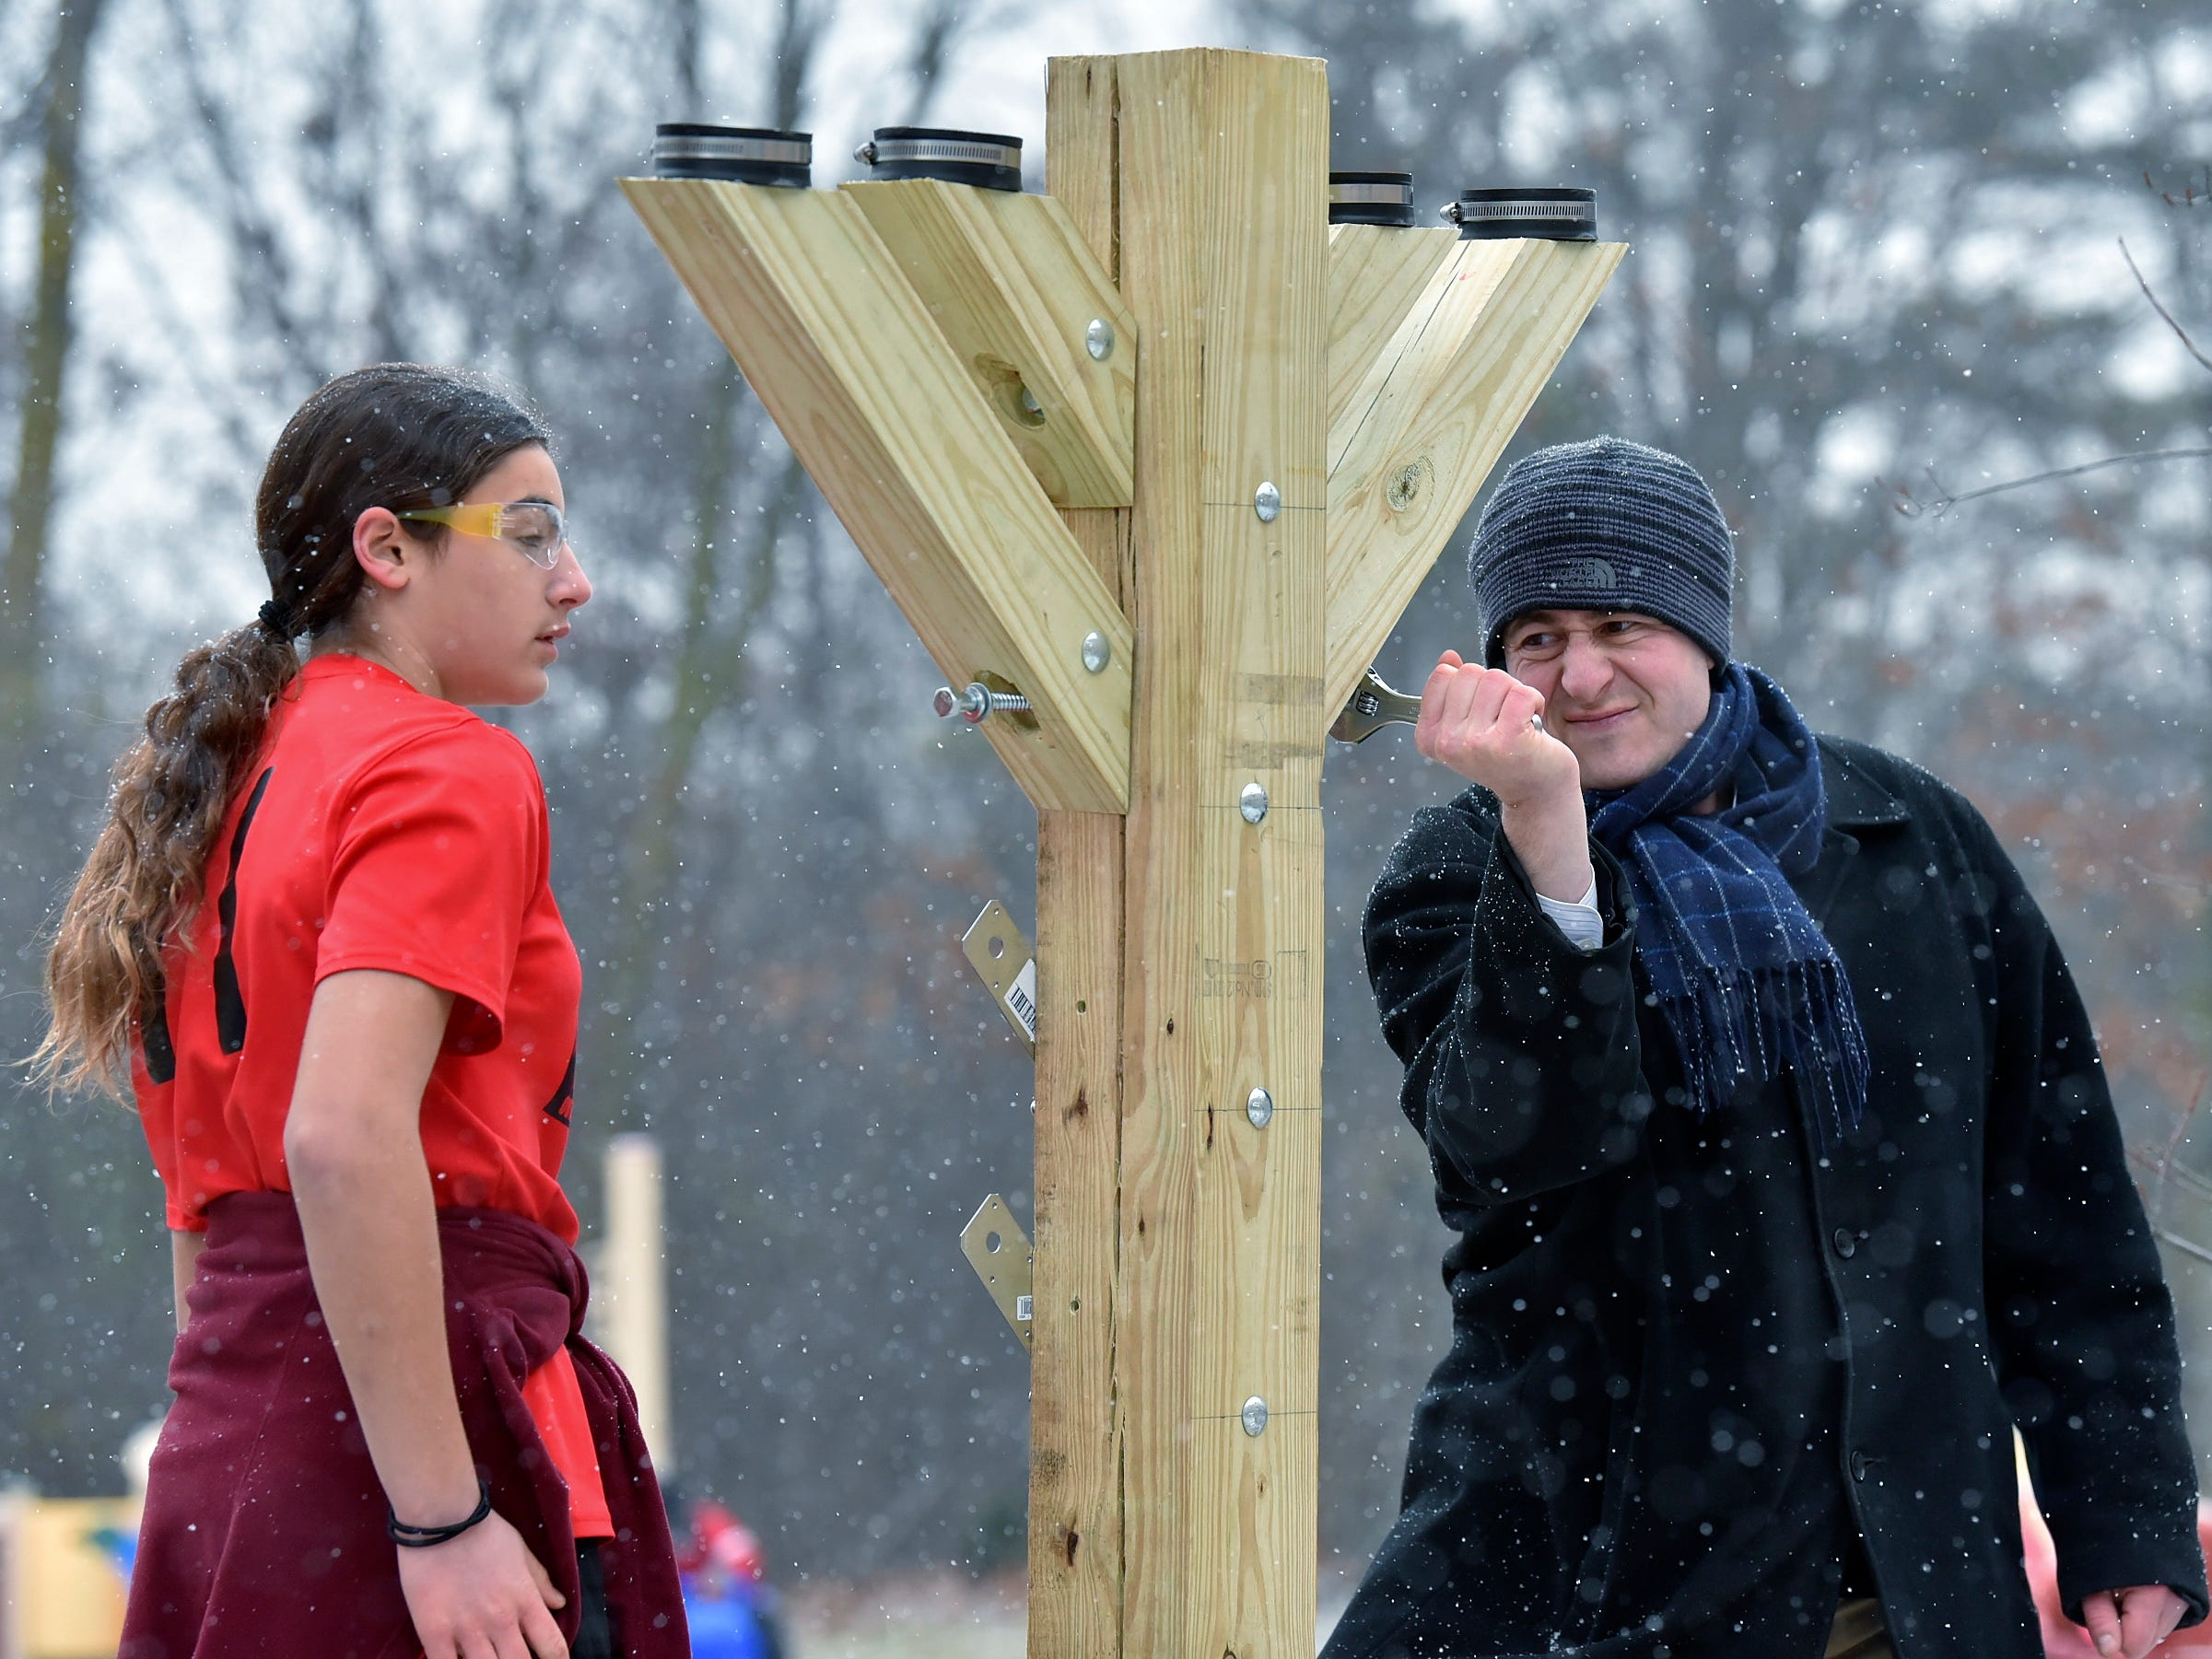 "Erica Fischman, left, of Southfield and Rabbi Shalom Kantor attach branches to the parade-float menorah. West Bloomfield Township's Congregation B'nai Moshe Rabbi Shalom Kantor is assisted by Hillel Day School seventh graders, in Farmington Hills, as they assemble a wooden menorah, Thursday morning, Nov. 29, 2018, on the rear of their ""Parade of Light"" float. The parade, in Oakland County Dec. 8-9, is the final weekend of Hanukkah."